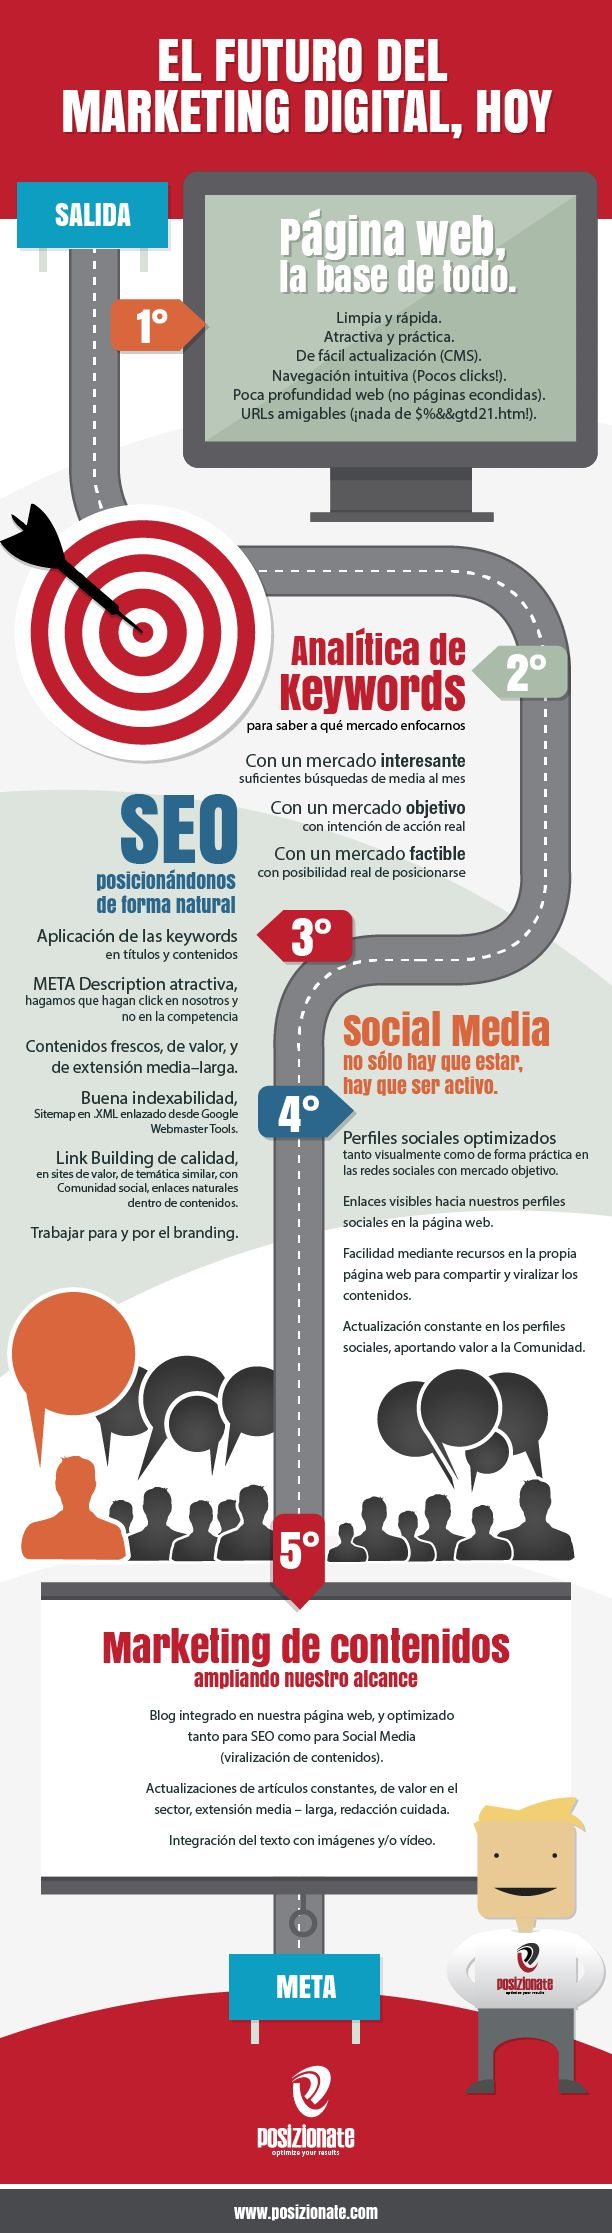 La Estrategia del Marketing Digital en nuestro plan